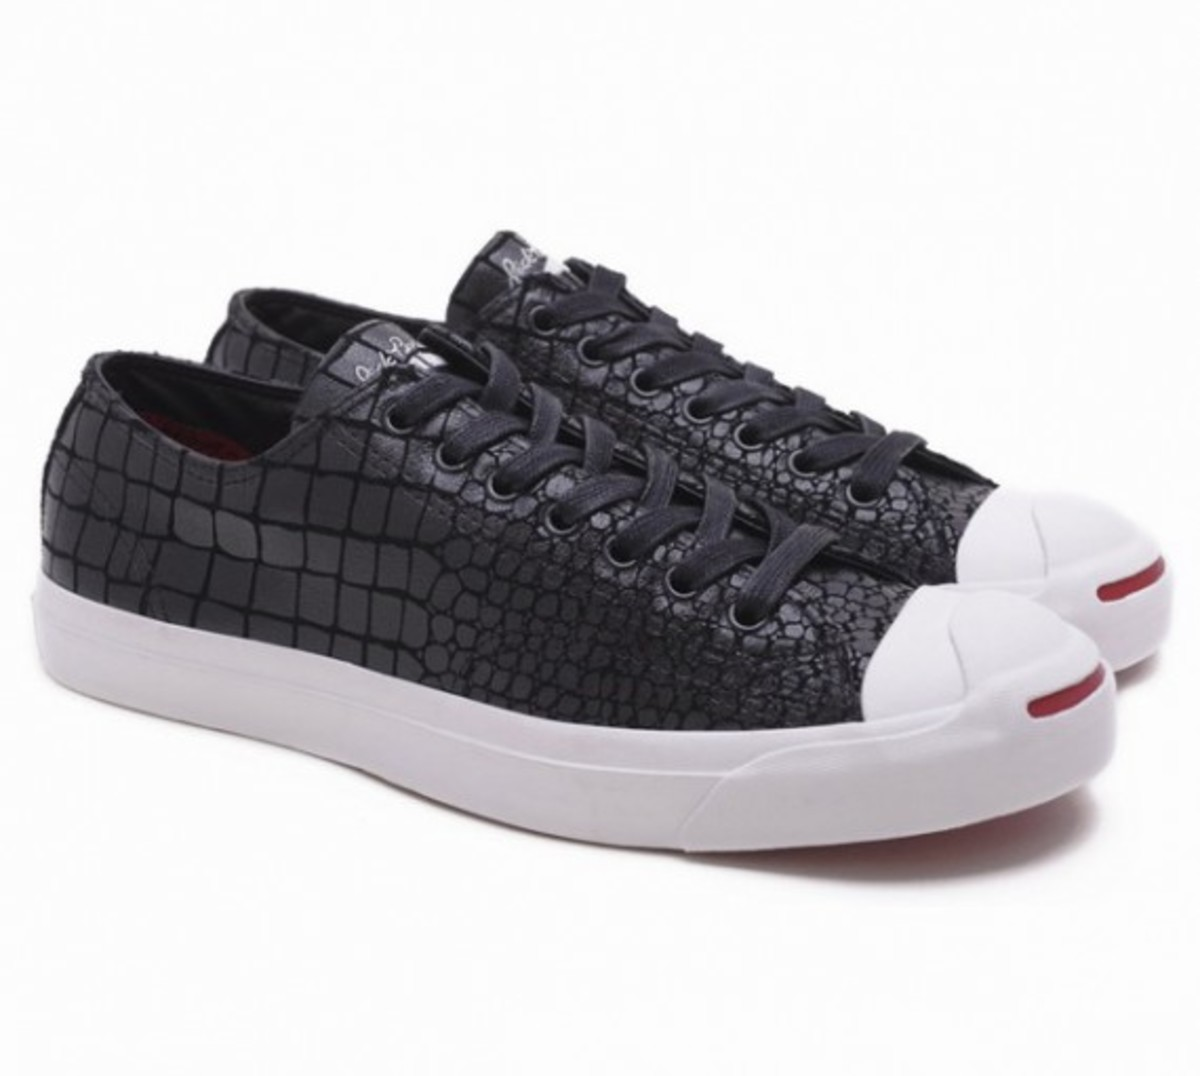 converse-jack-purcell-leather-ox-dragon-croc-skin-03